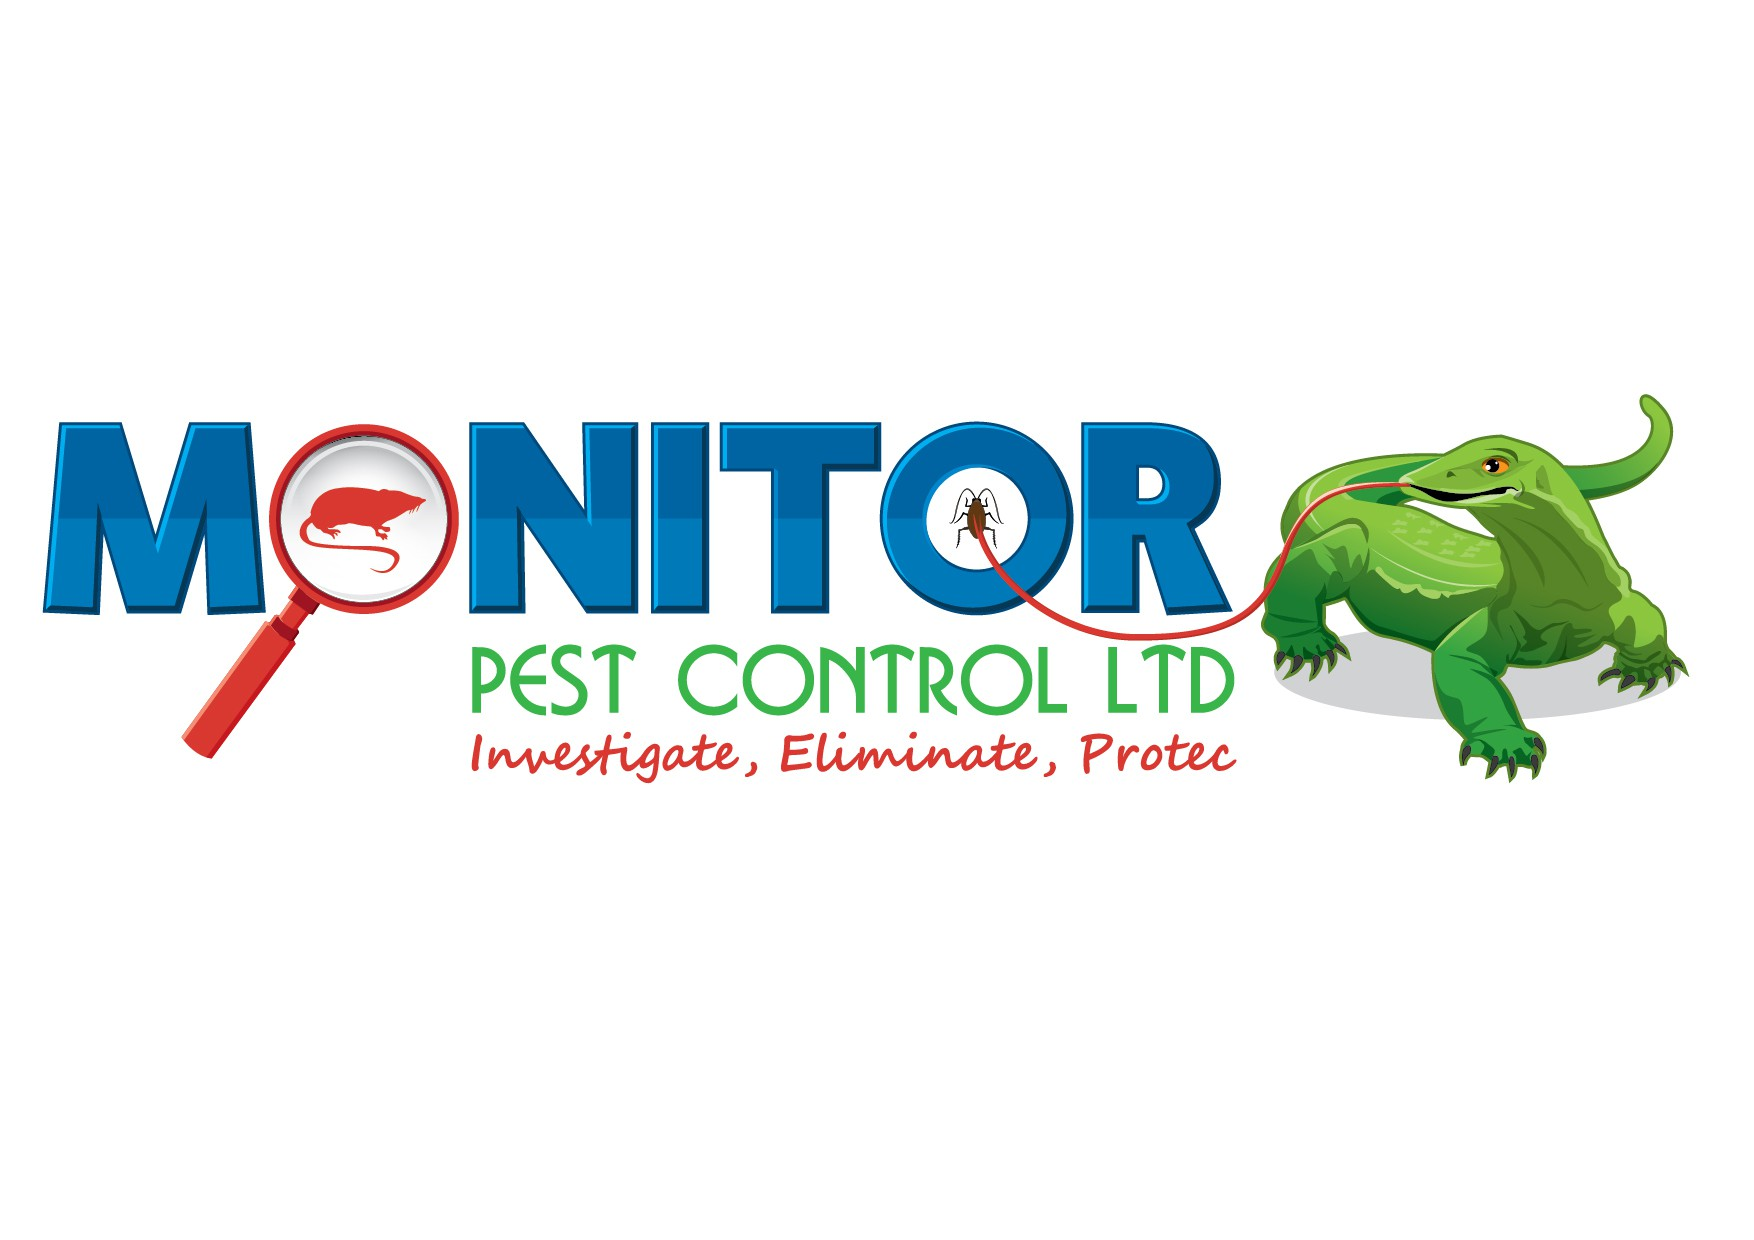 New logo wanted for Monitor Pest Control Ltd